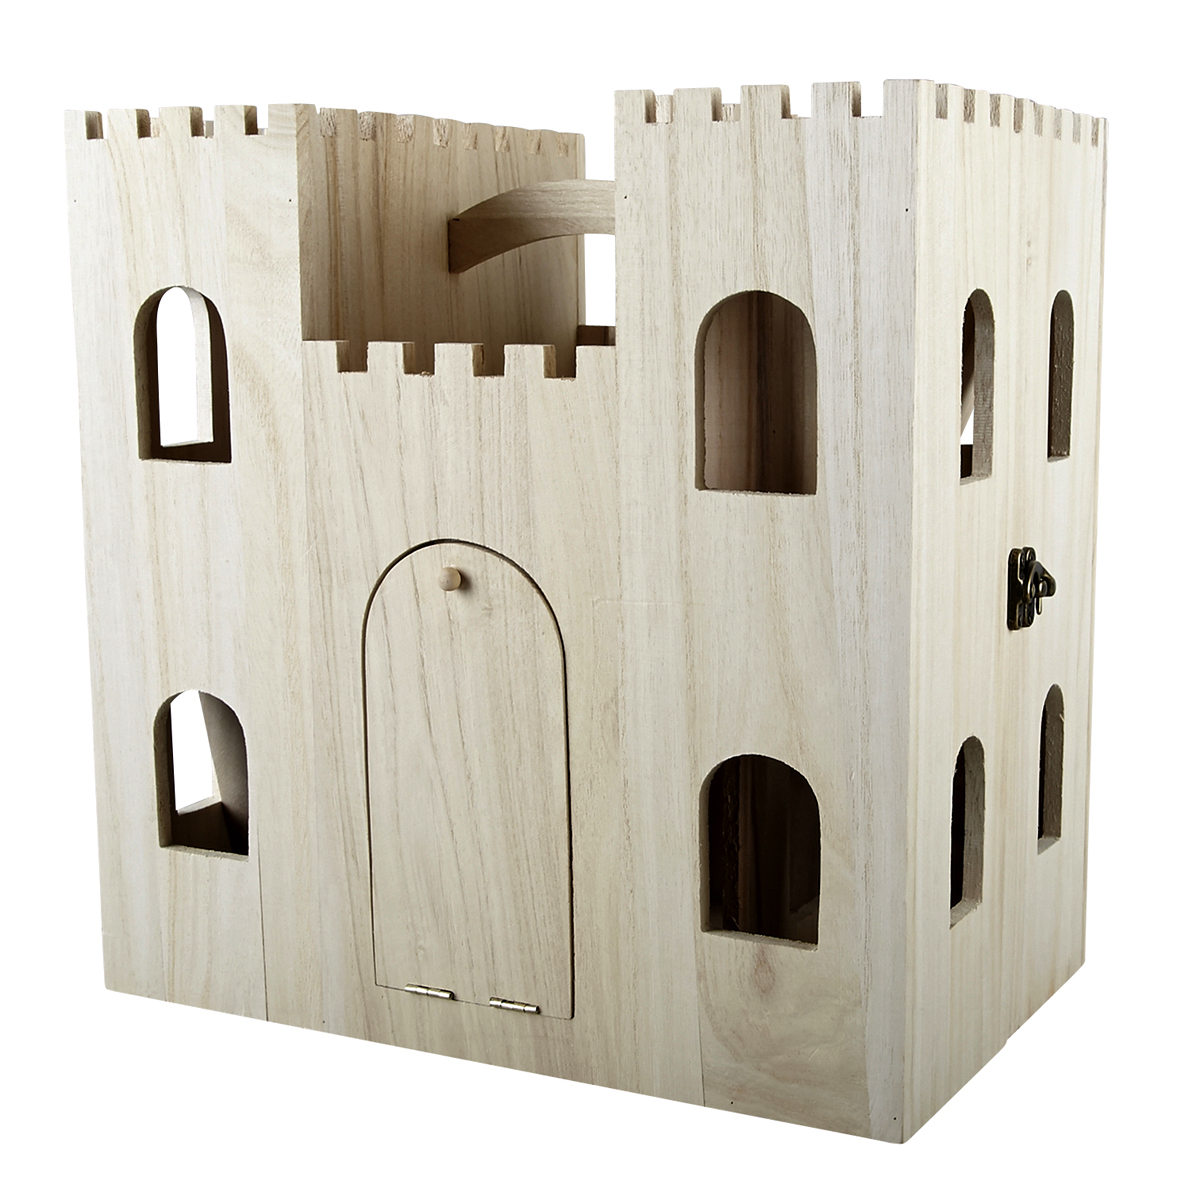 ArtMinds Wood Castle Dollhouse